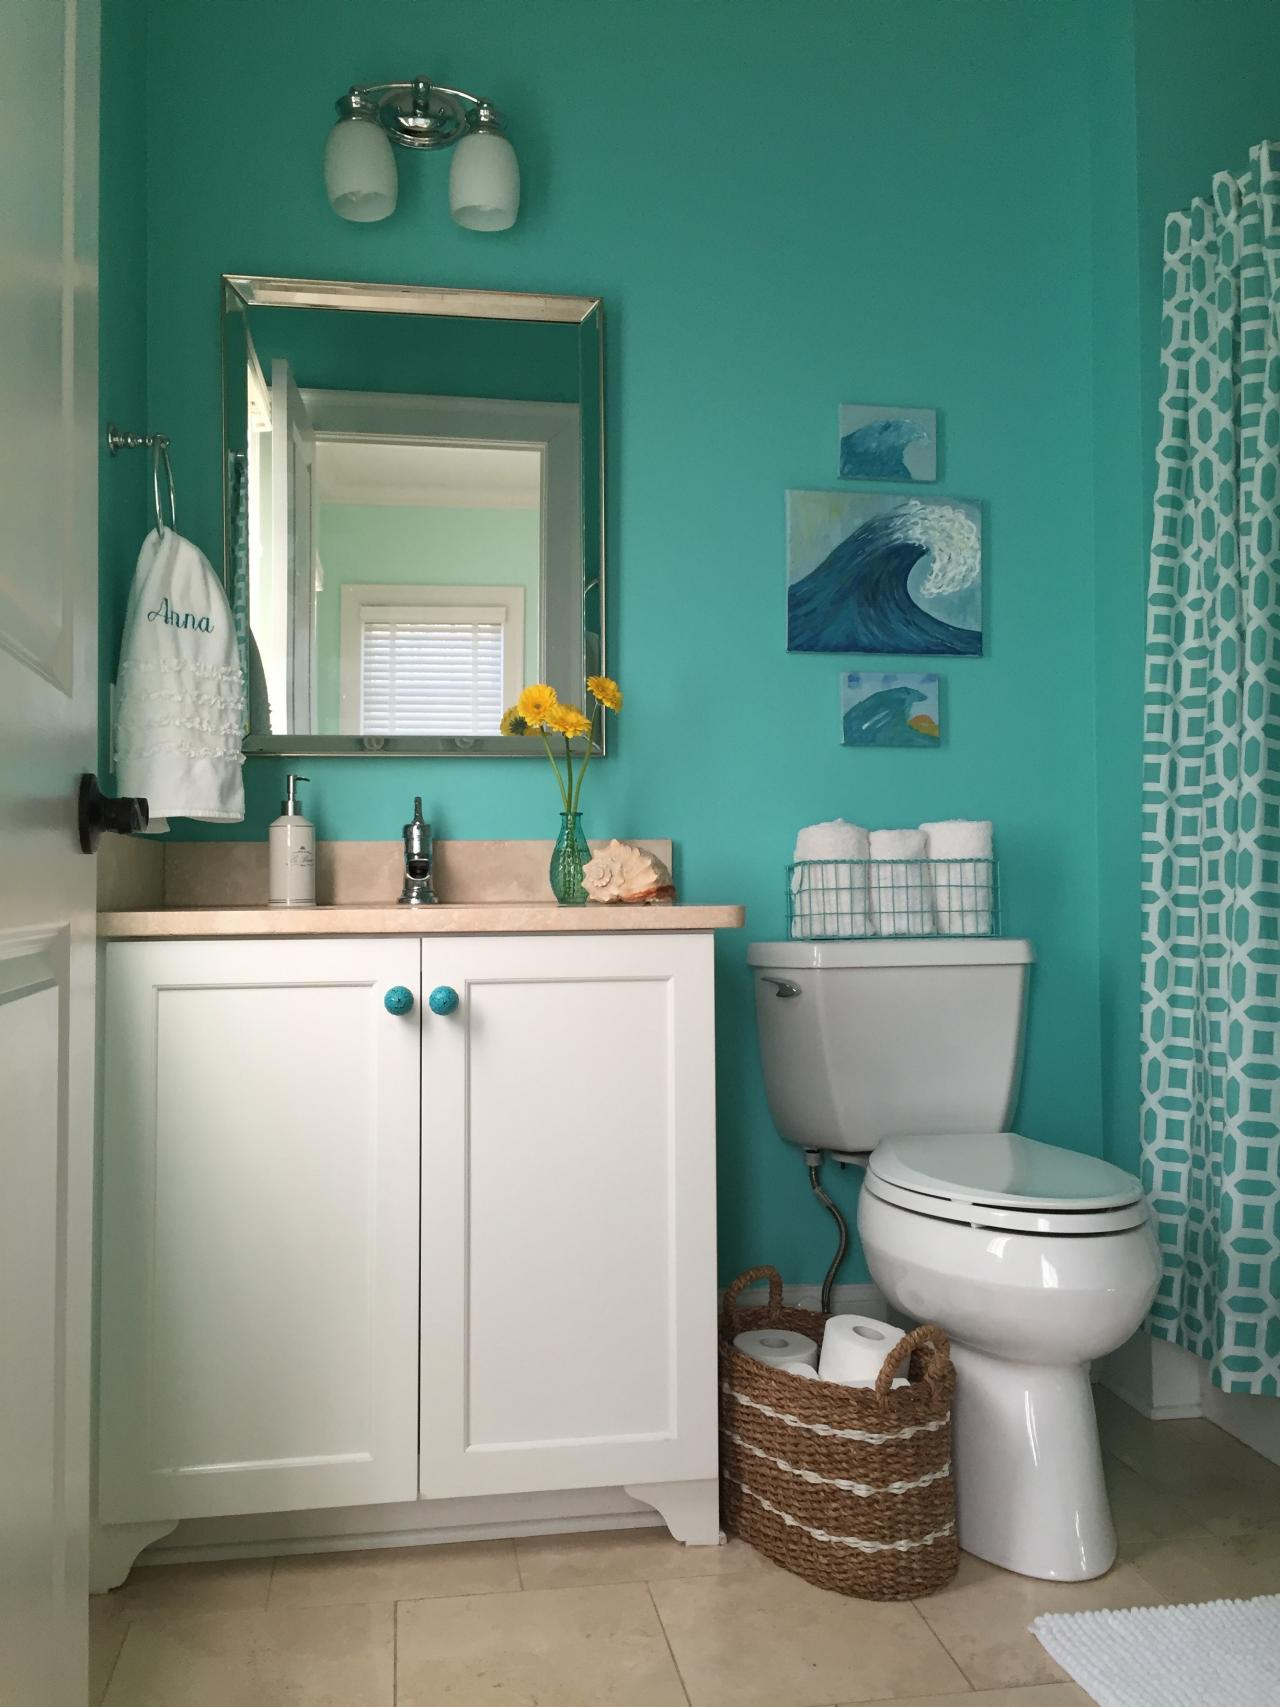 Small bathroom photos hgtv for Bathroom designs hgtv